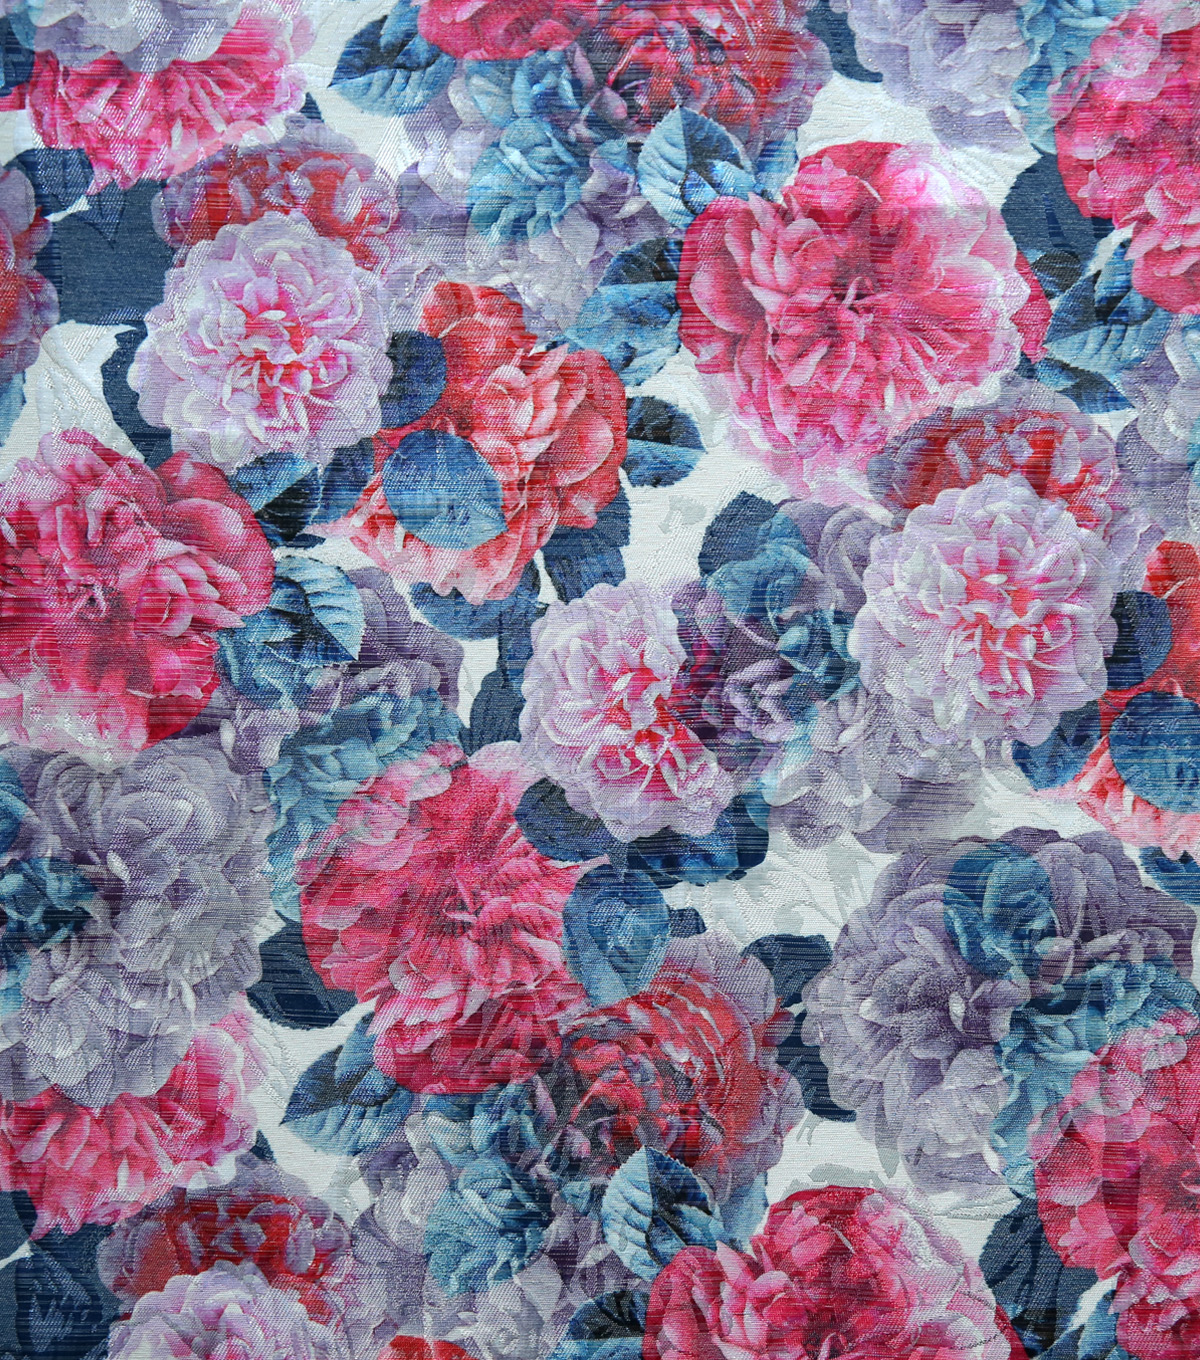 Sew Sweet Printed Floral Brocade Fabric